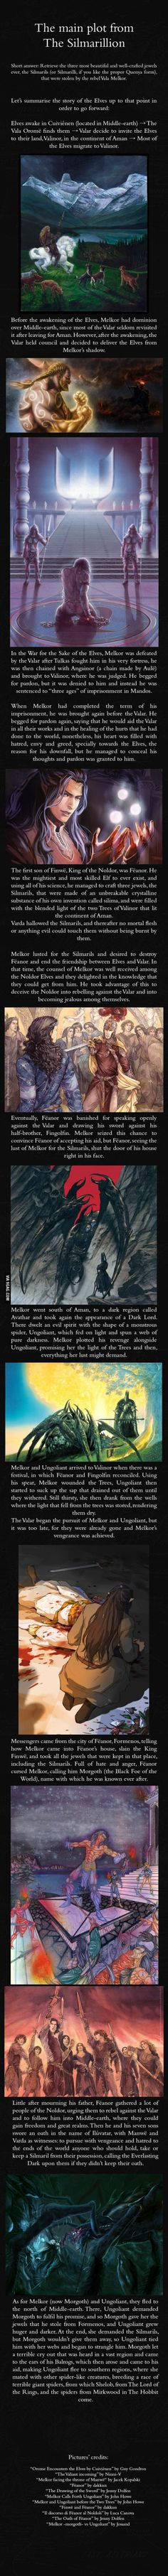 Kind of a brief prelude. The Silmarillion main plot - J.R.R. Tolkien's Mythology